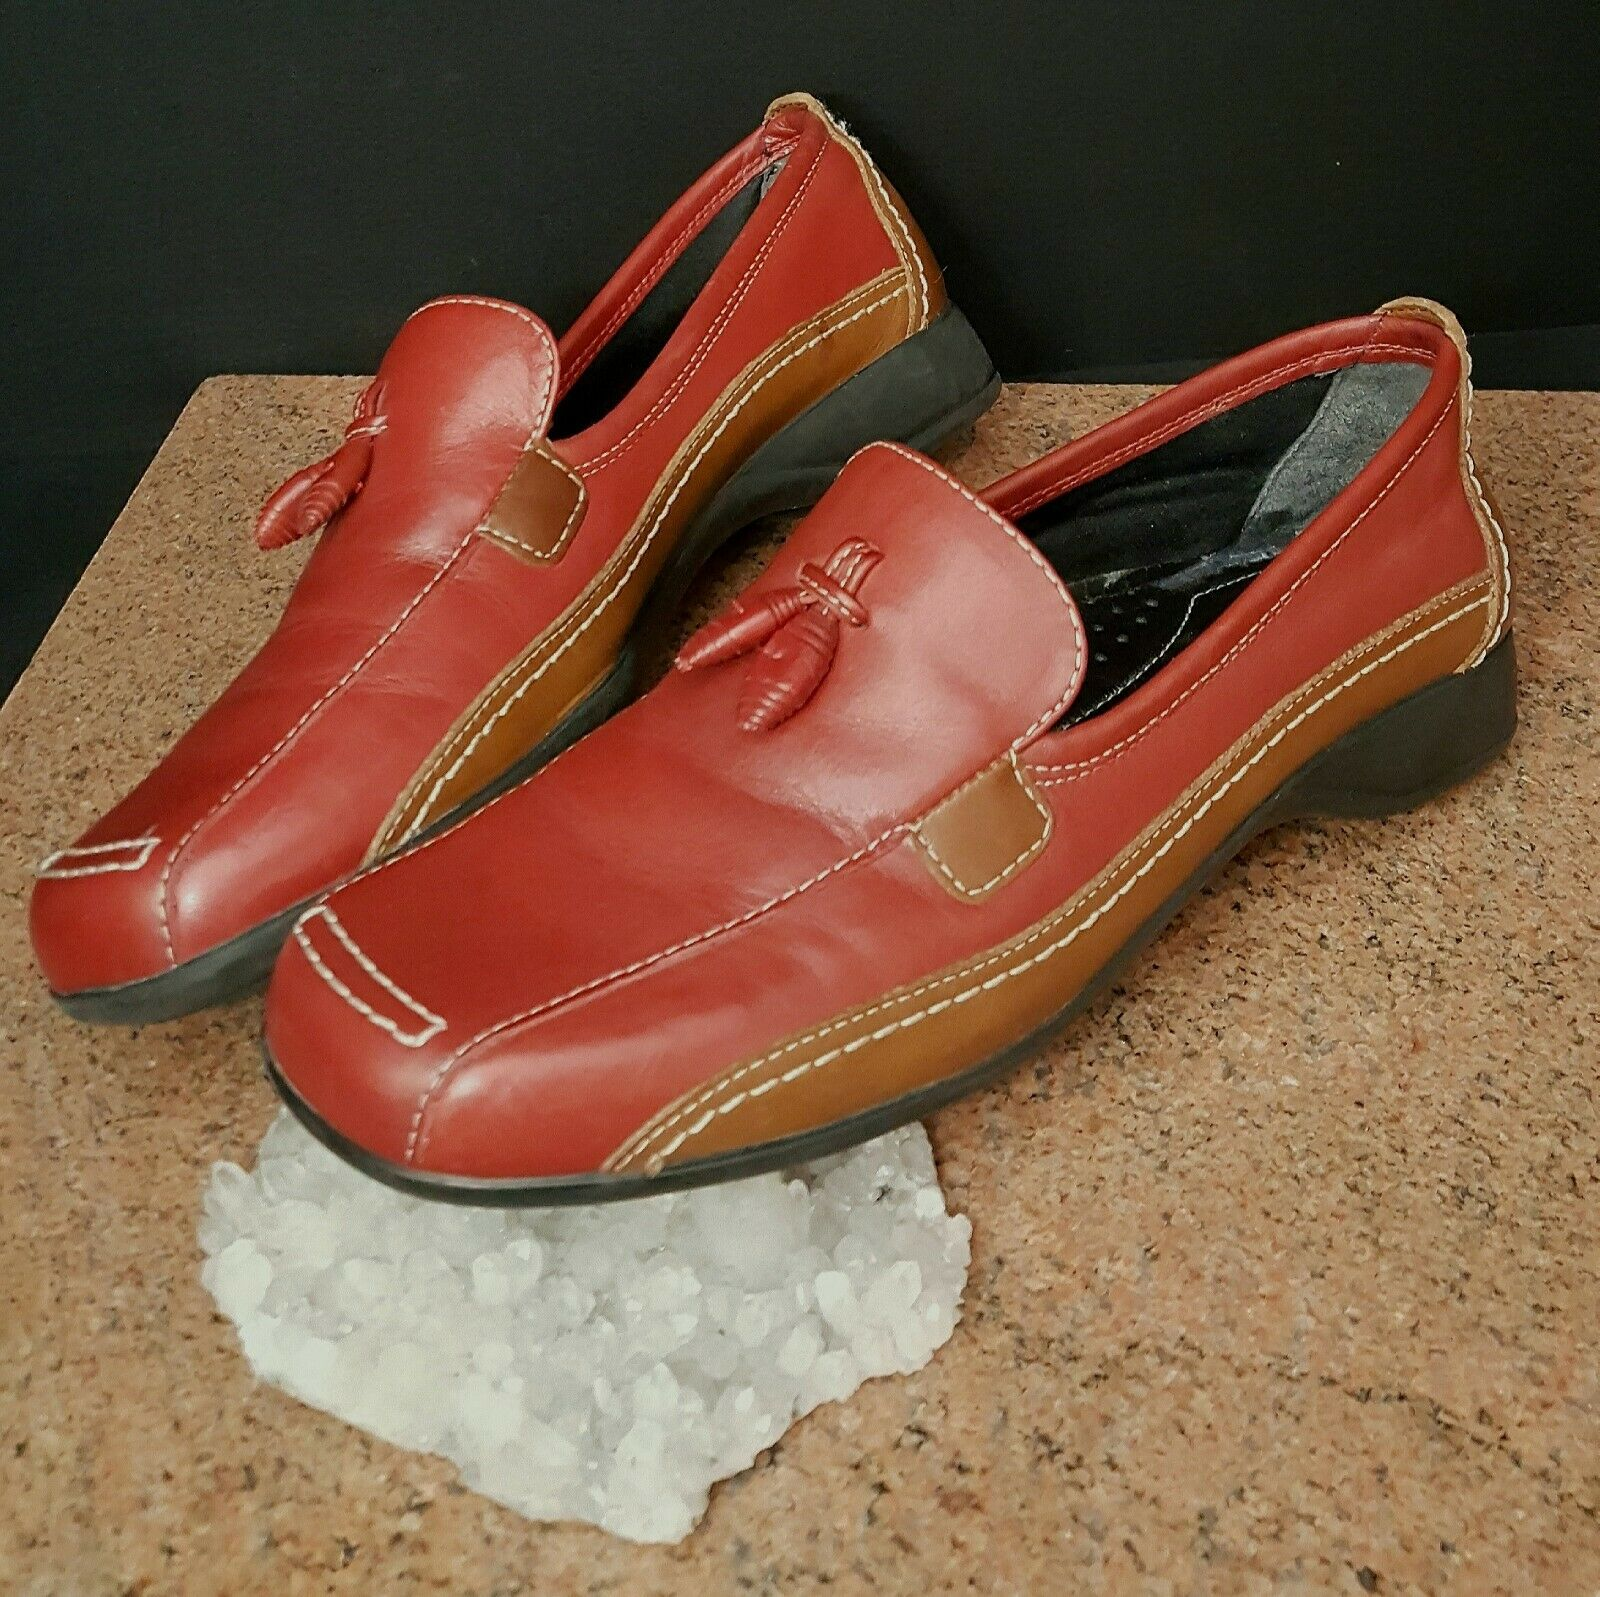 Naturalizer Women Red Brown Moccasin Loafer Slip On shoes 4.5M Pre Owned CUTE